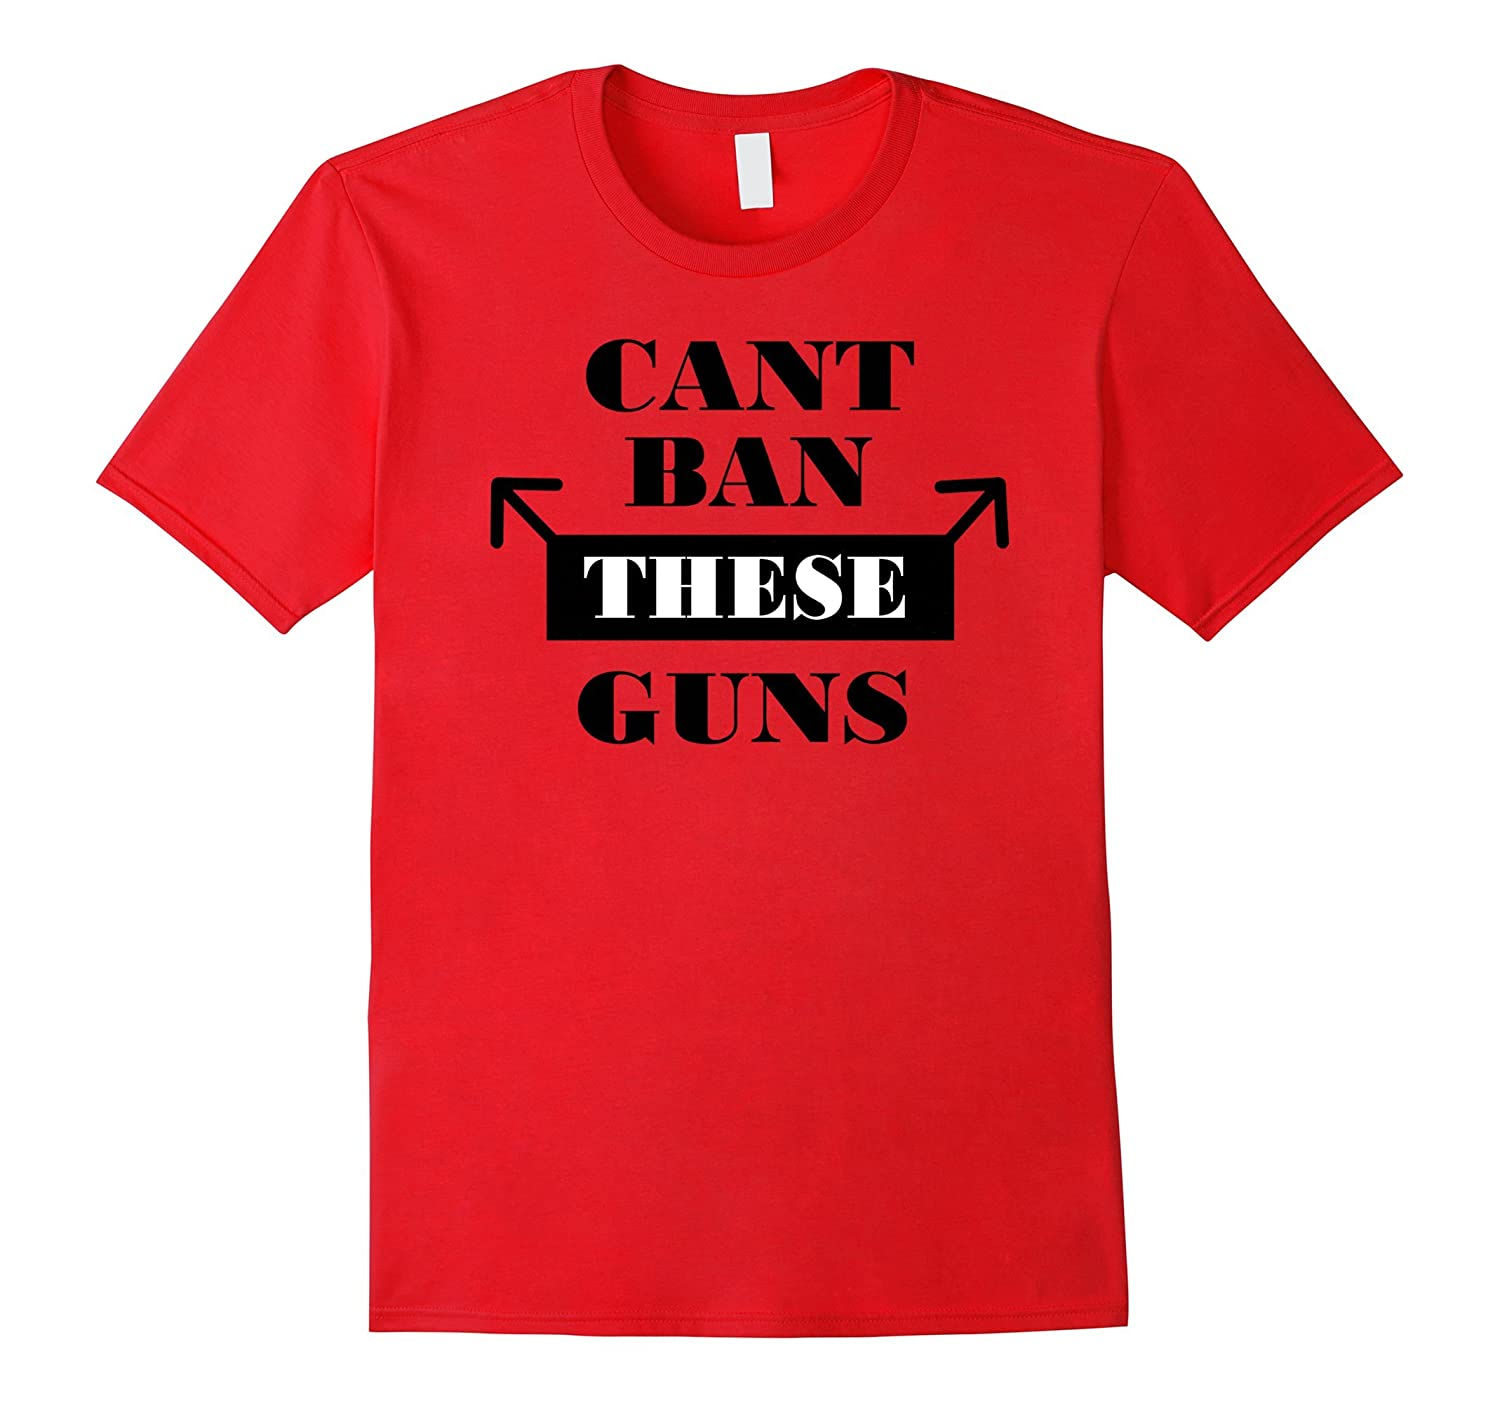 Can't Ban These Guns Men's Funny T-Shirt-CL